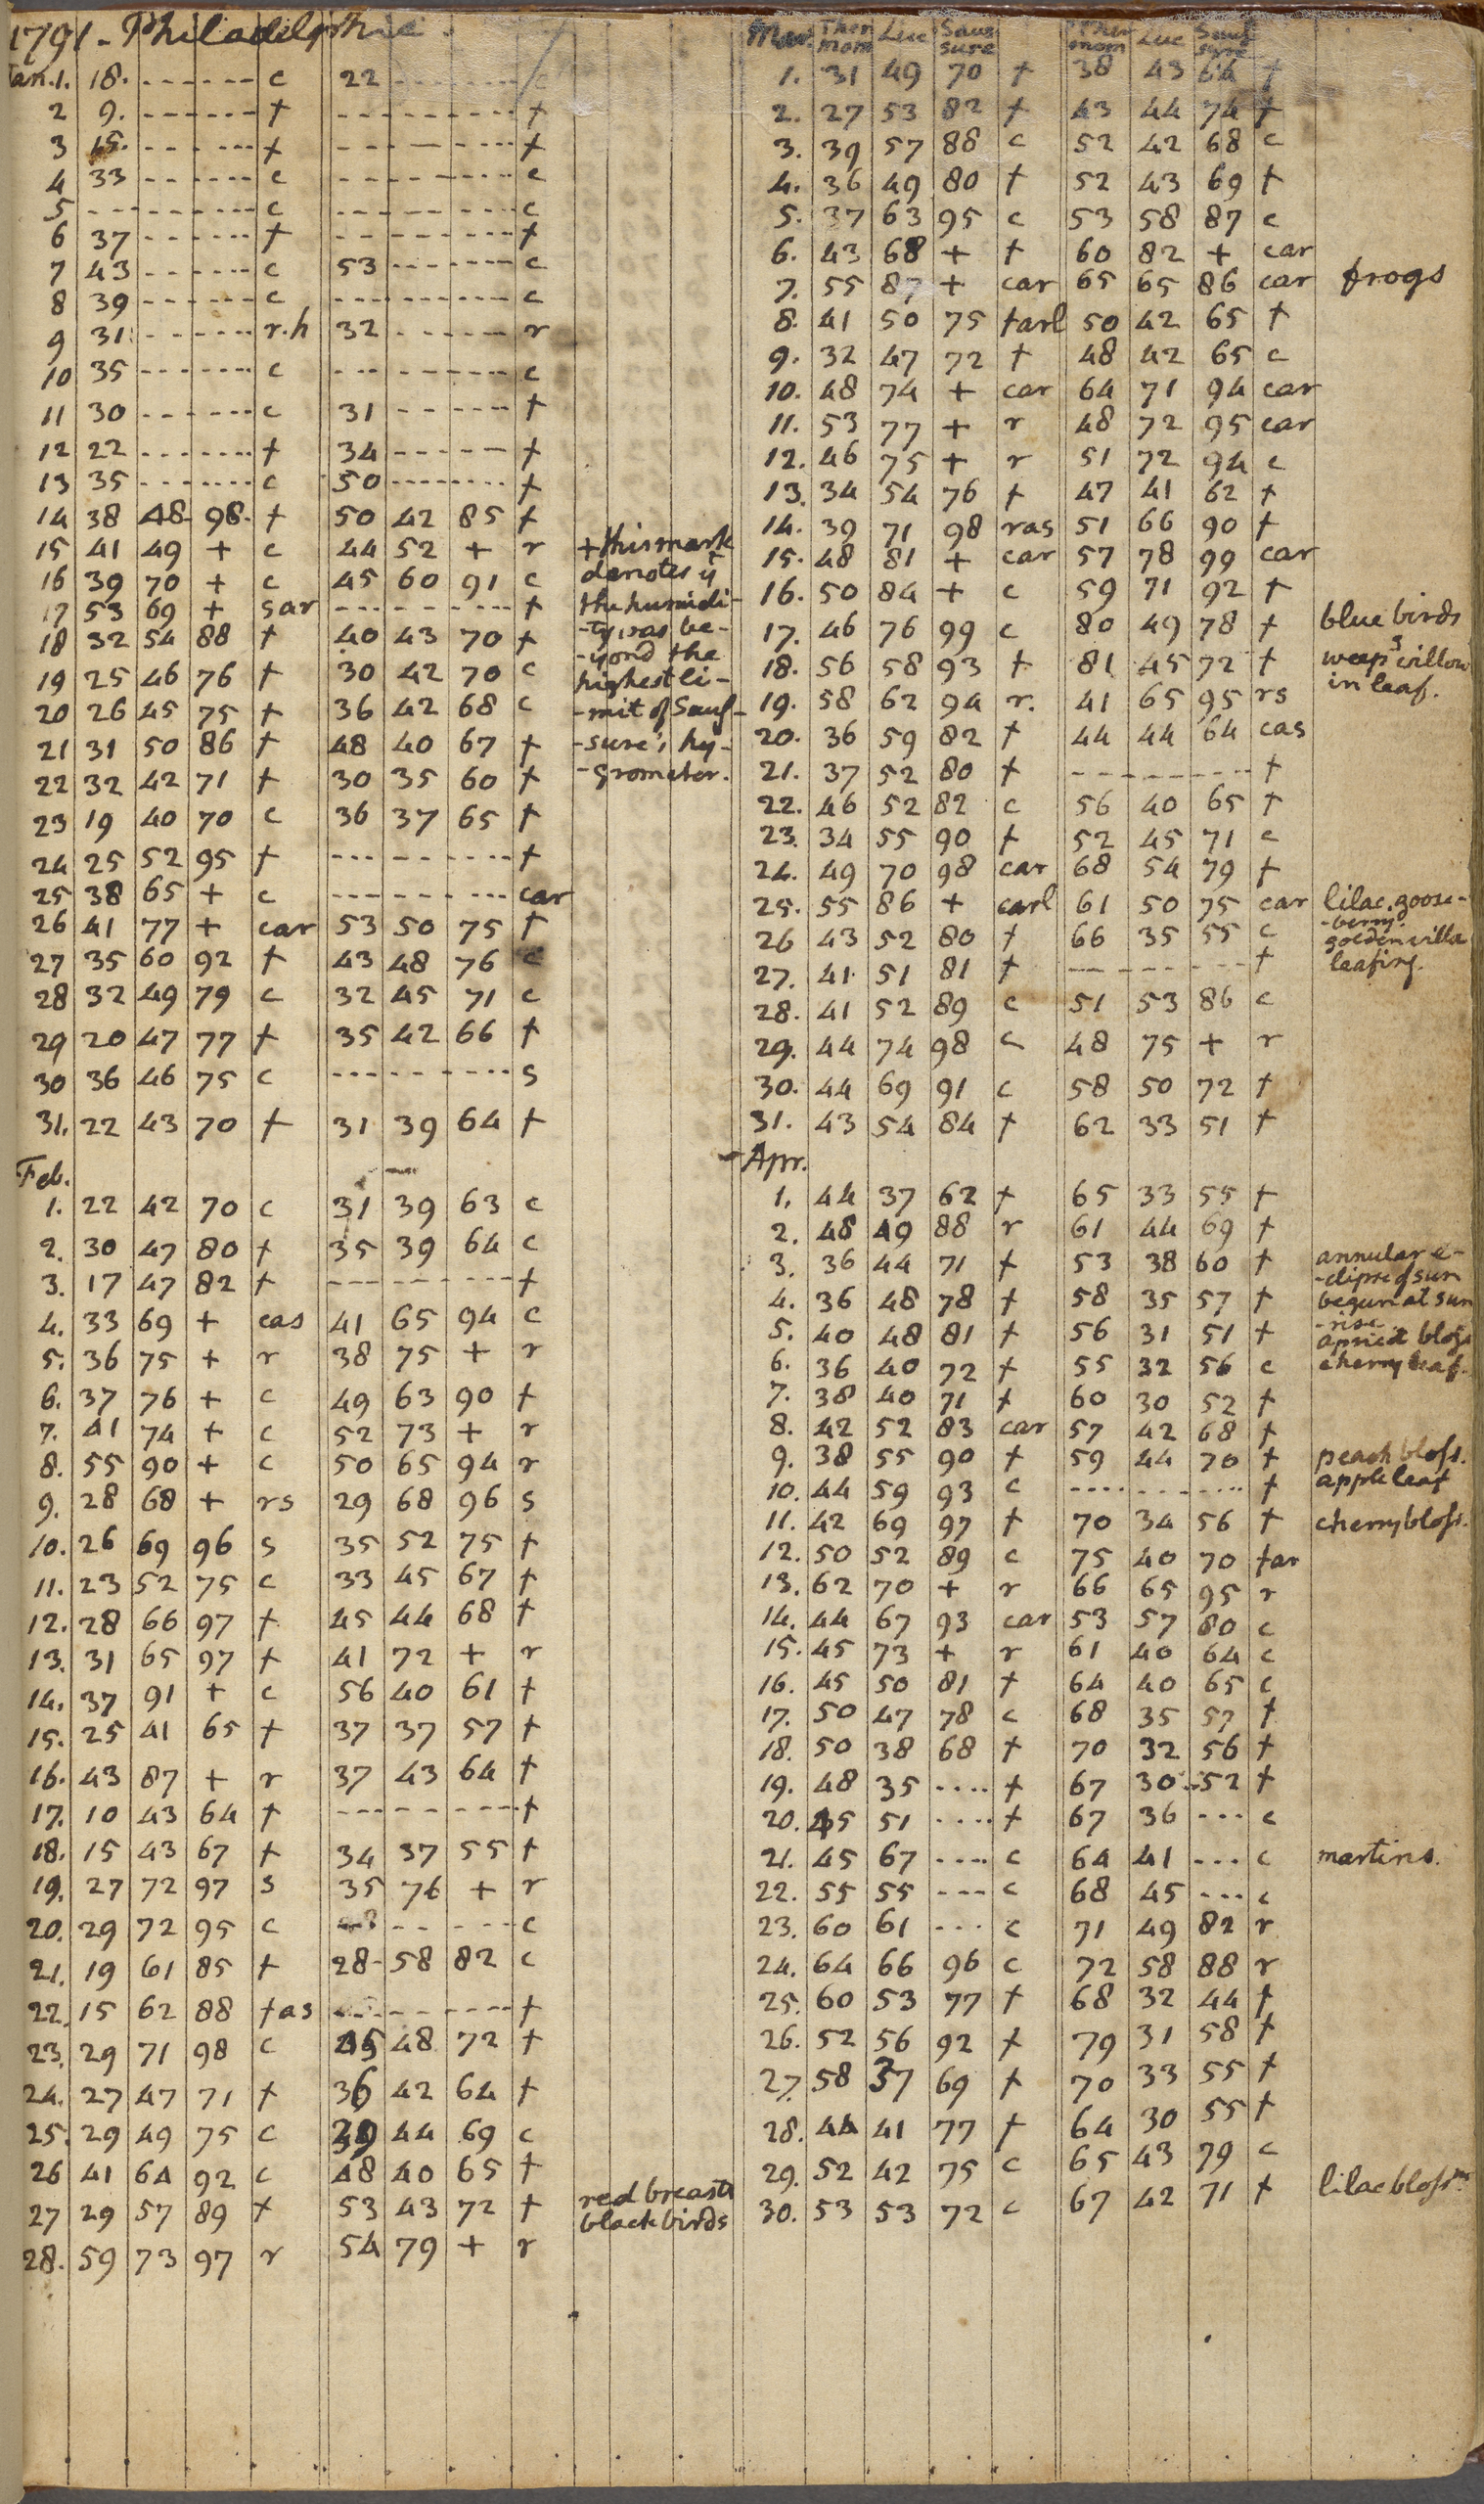 Daily Record, 1 January 1791-9 April 1794 p. 1